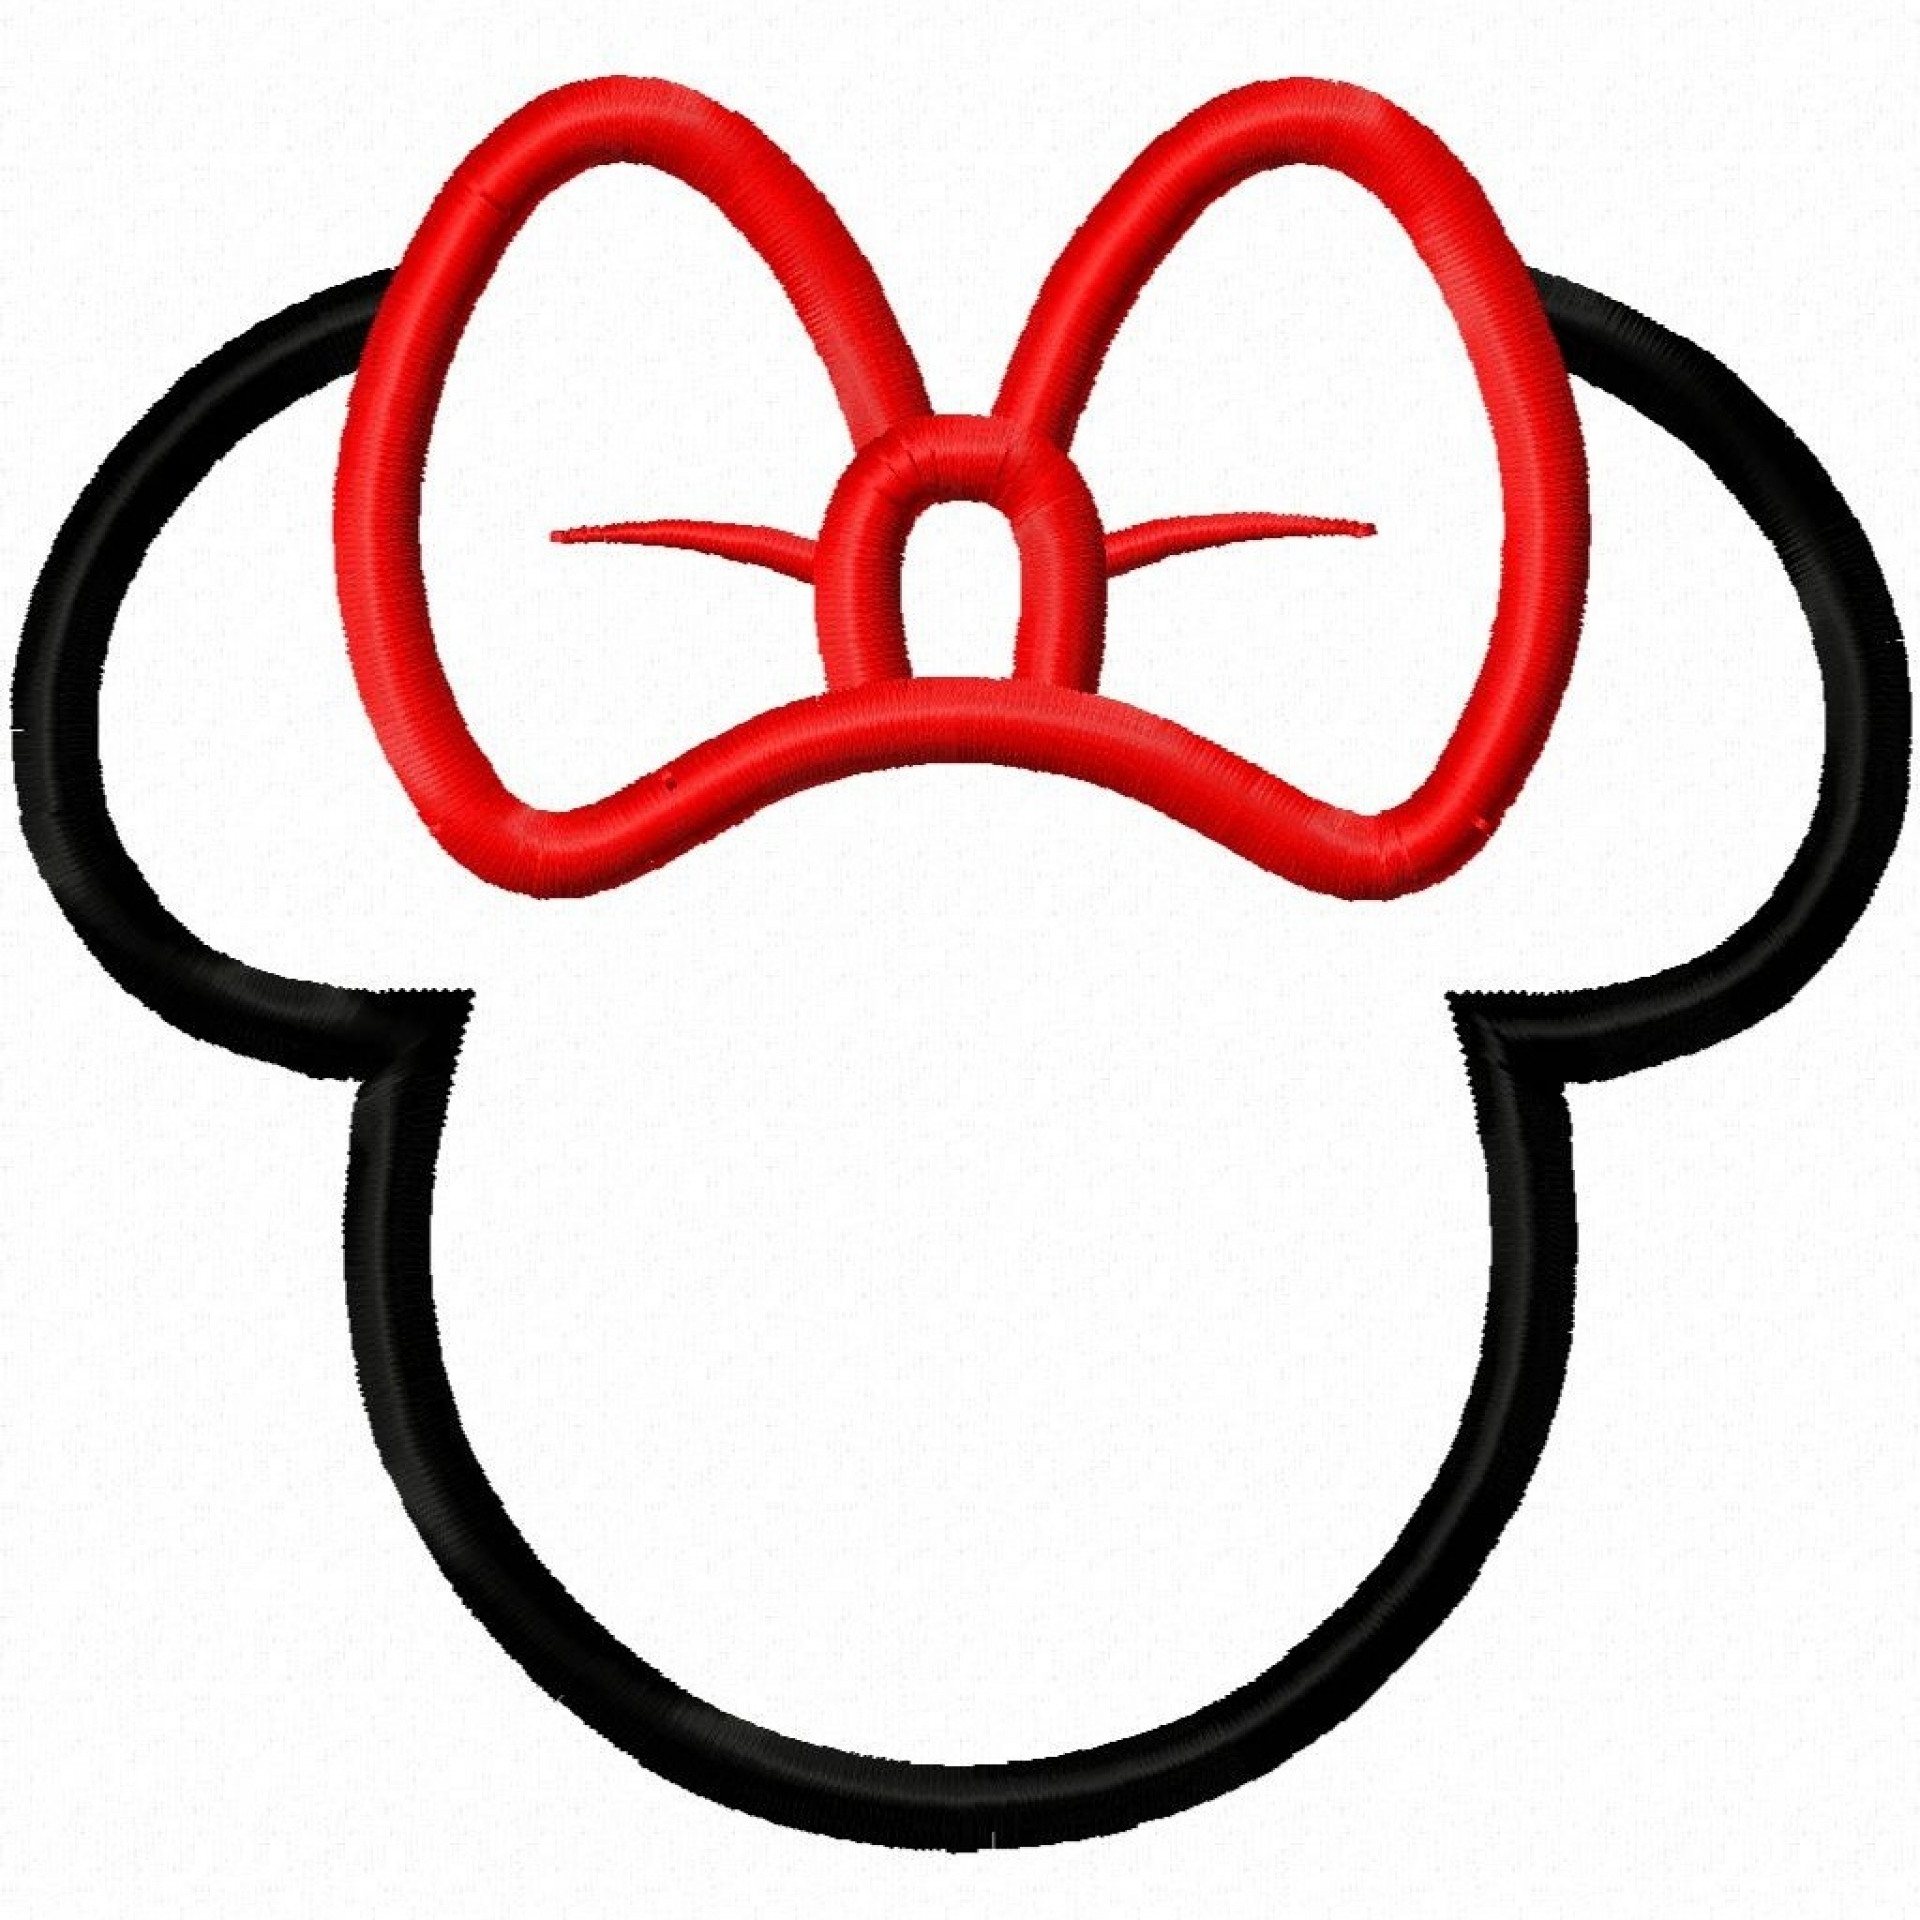 1920x1920 Free Minnie Mouse Silhouette, Hanslodge Clip Art Collection